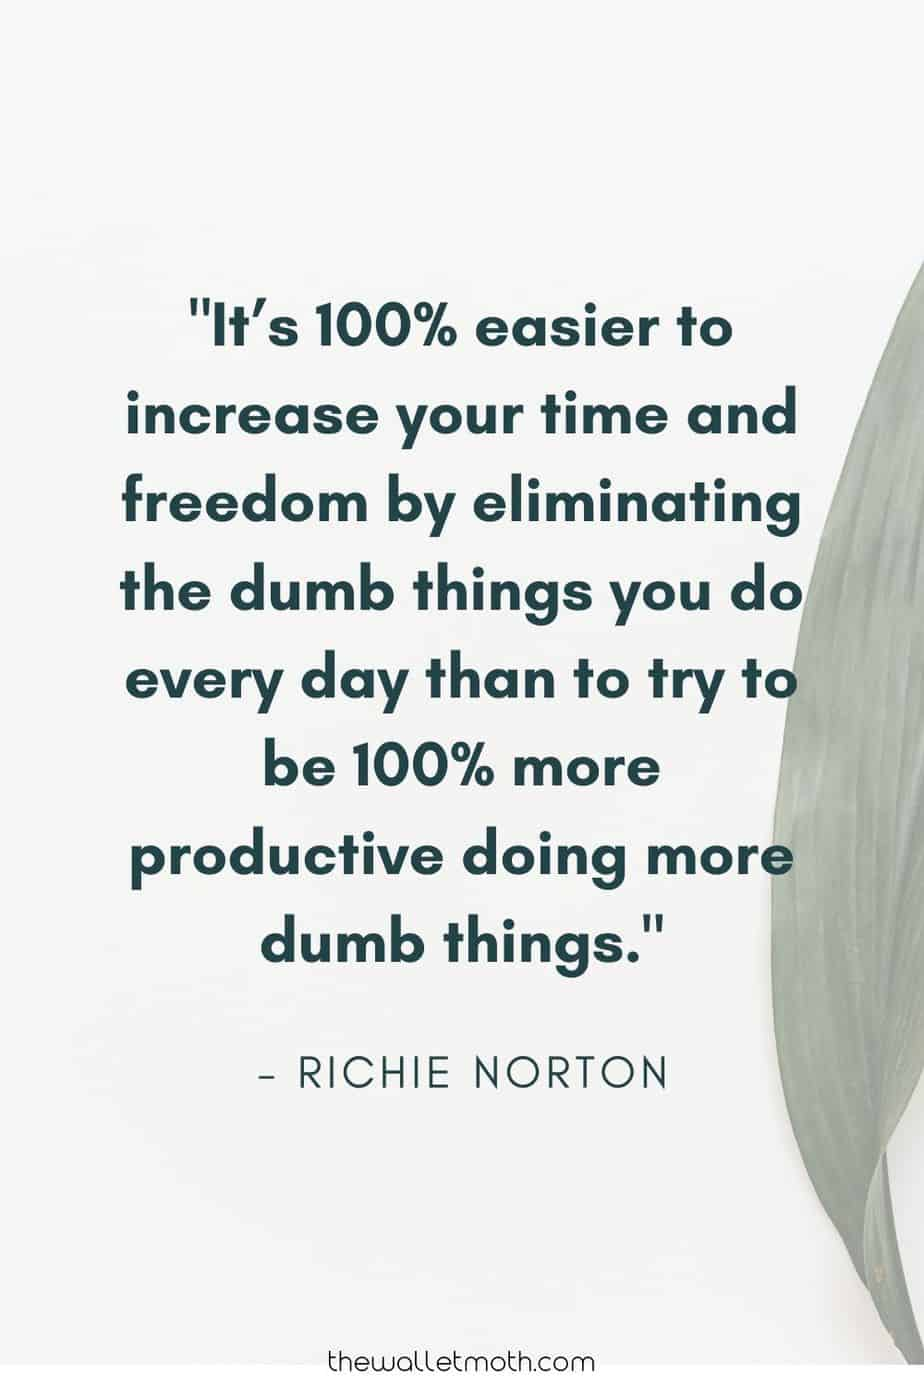 """It's 100% easier to increase your time and freedom by eliminating the dumb things you do every day than to try to be 100% more productive doing more dumb things."" - Richie Norton"